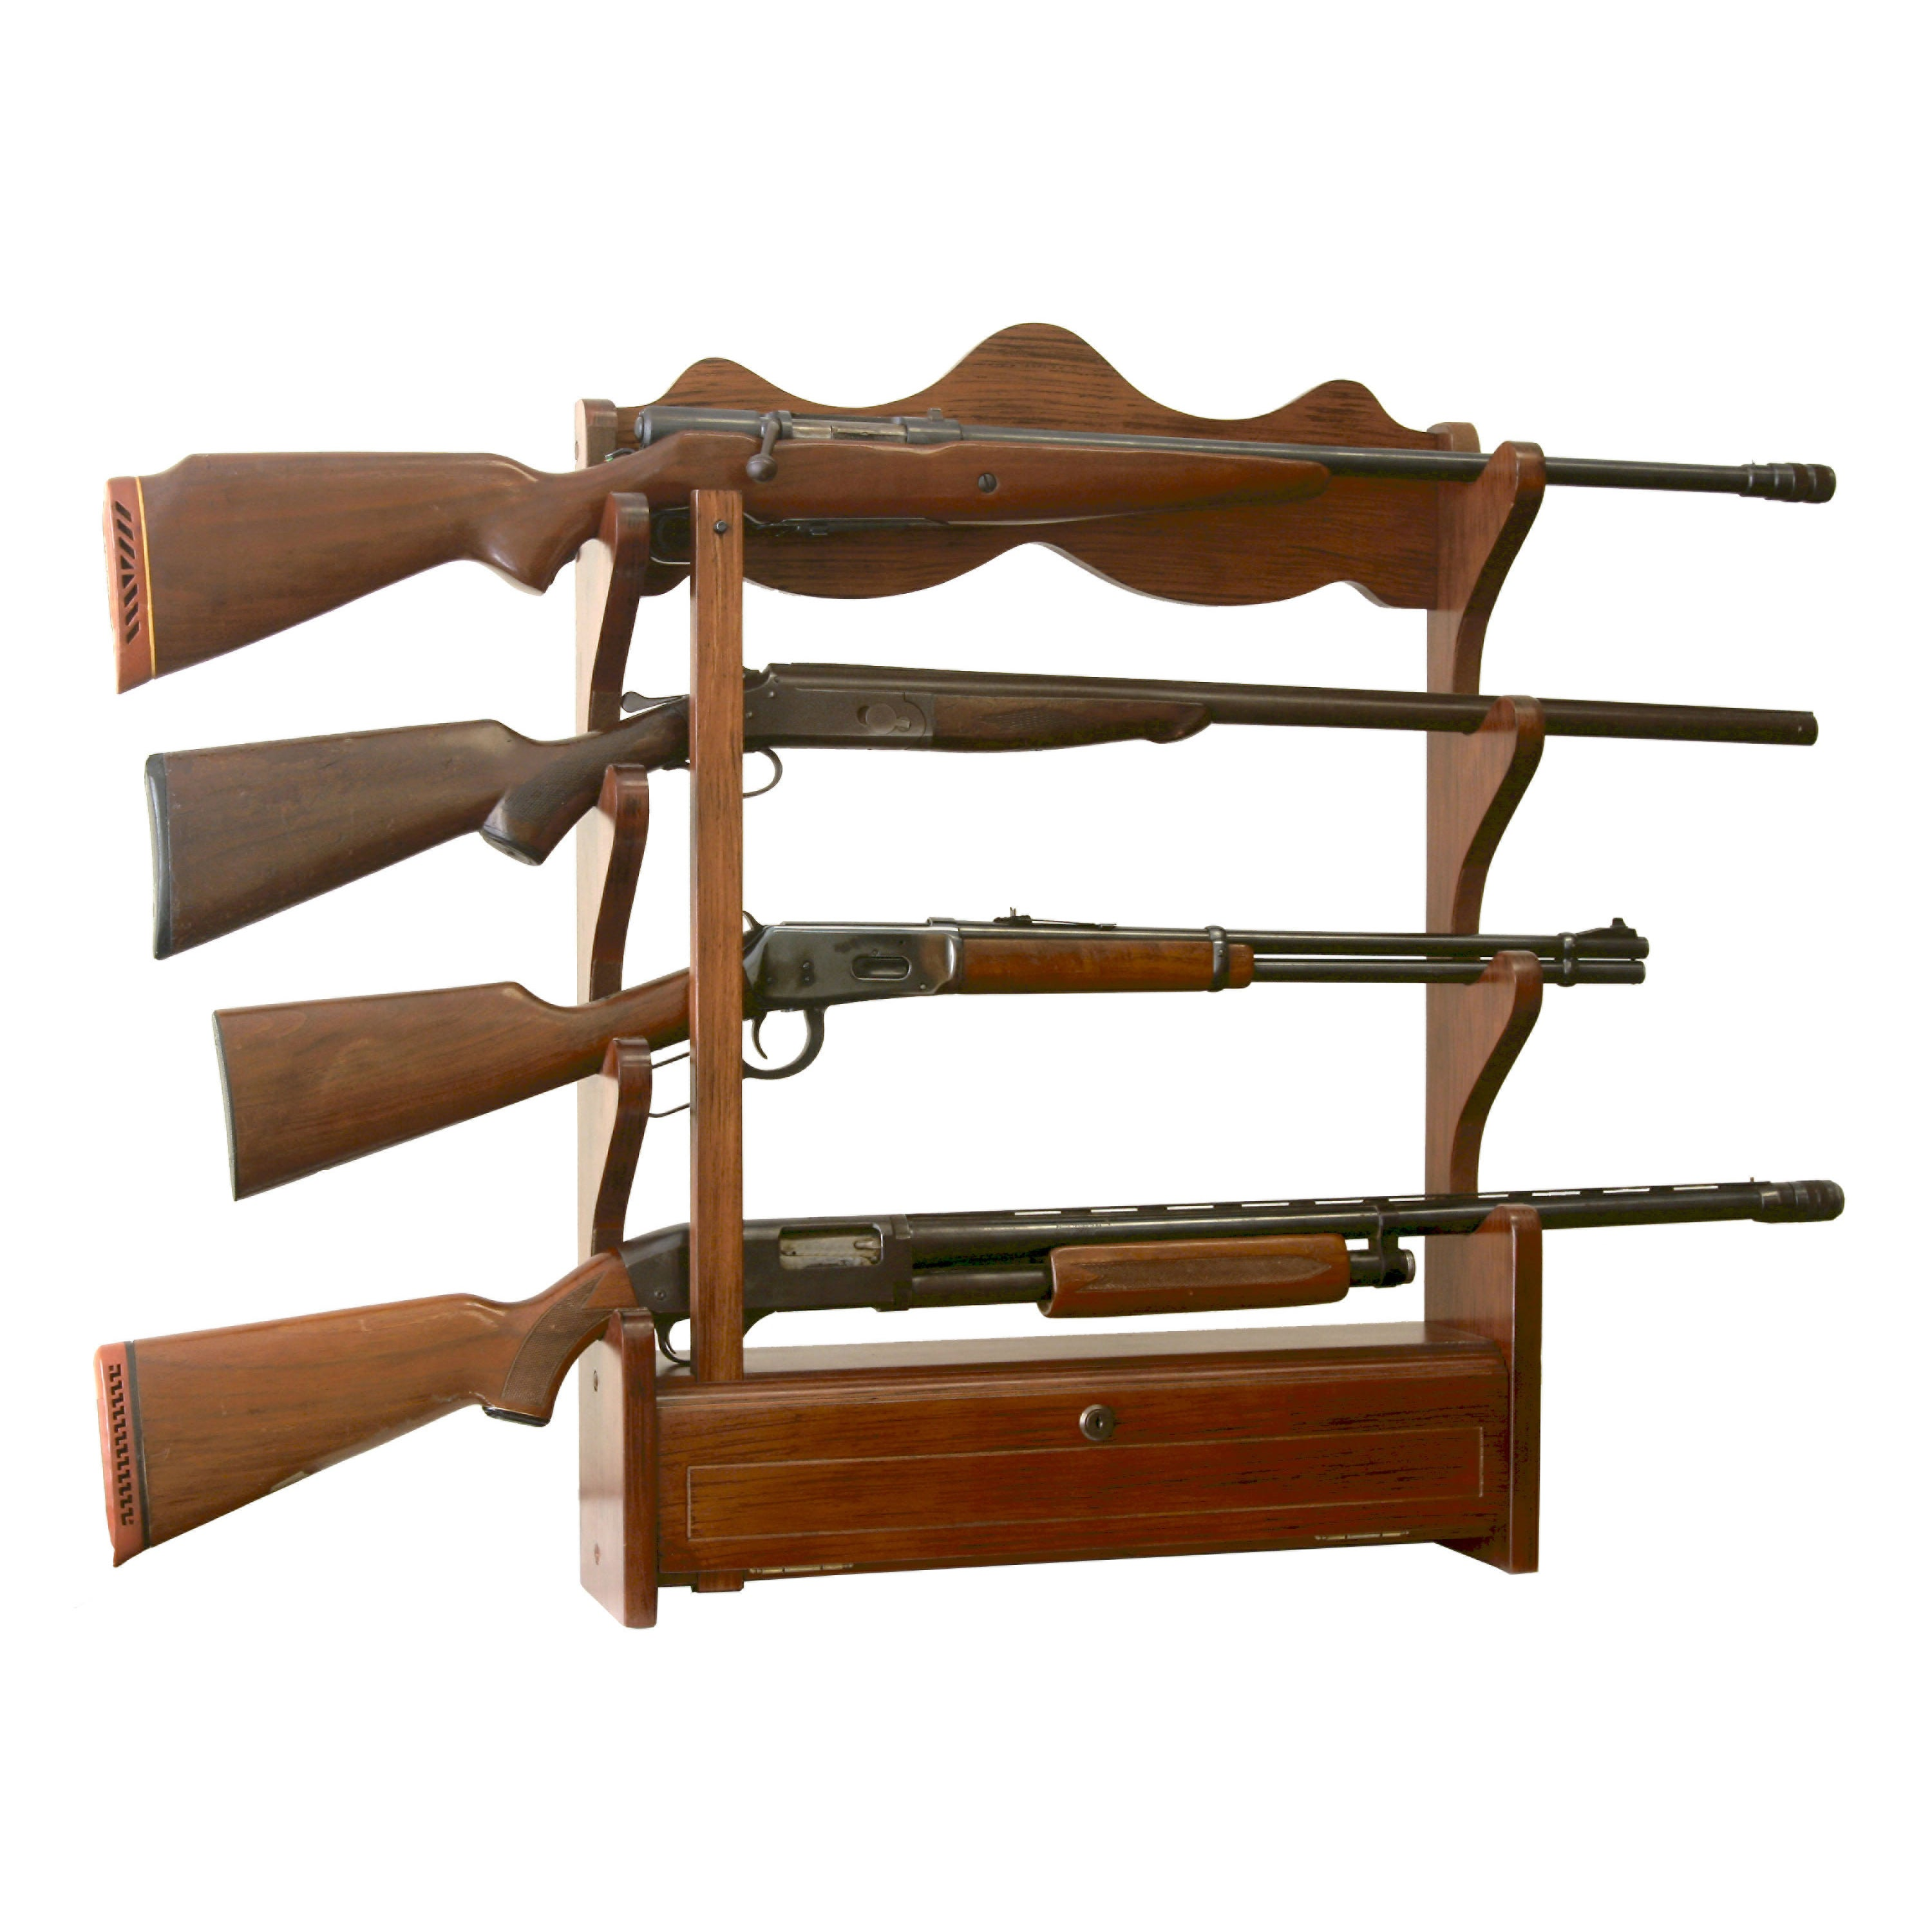 Gun Storage & Safety | Find Great Hunting Deals Shopping at ...